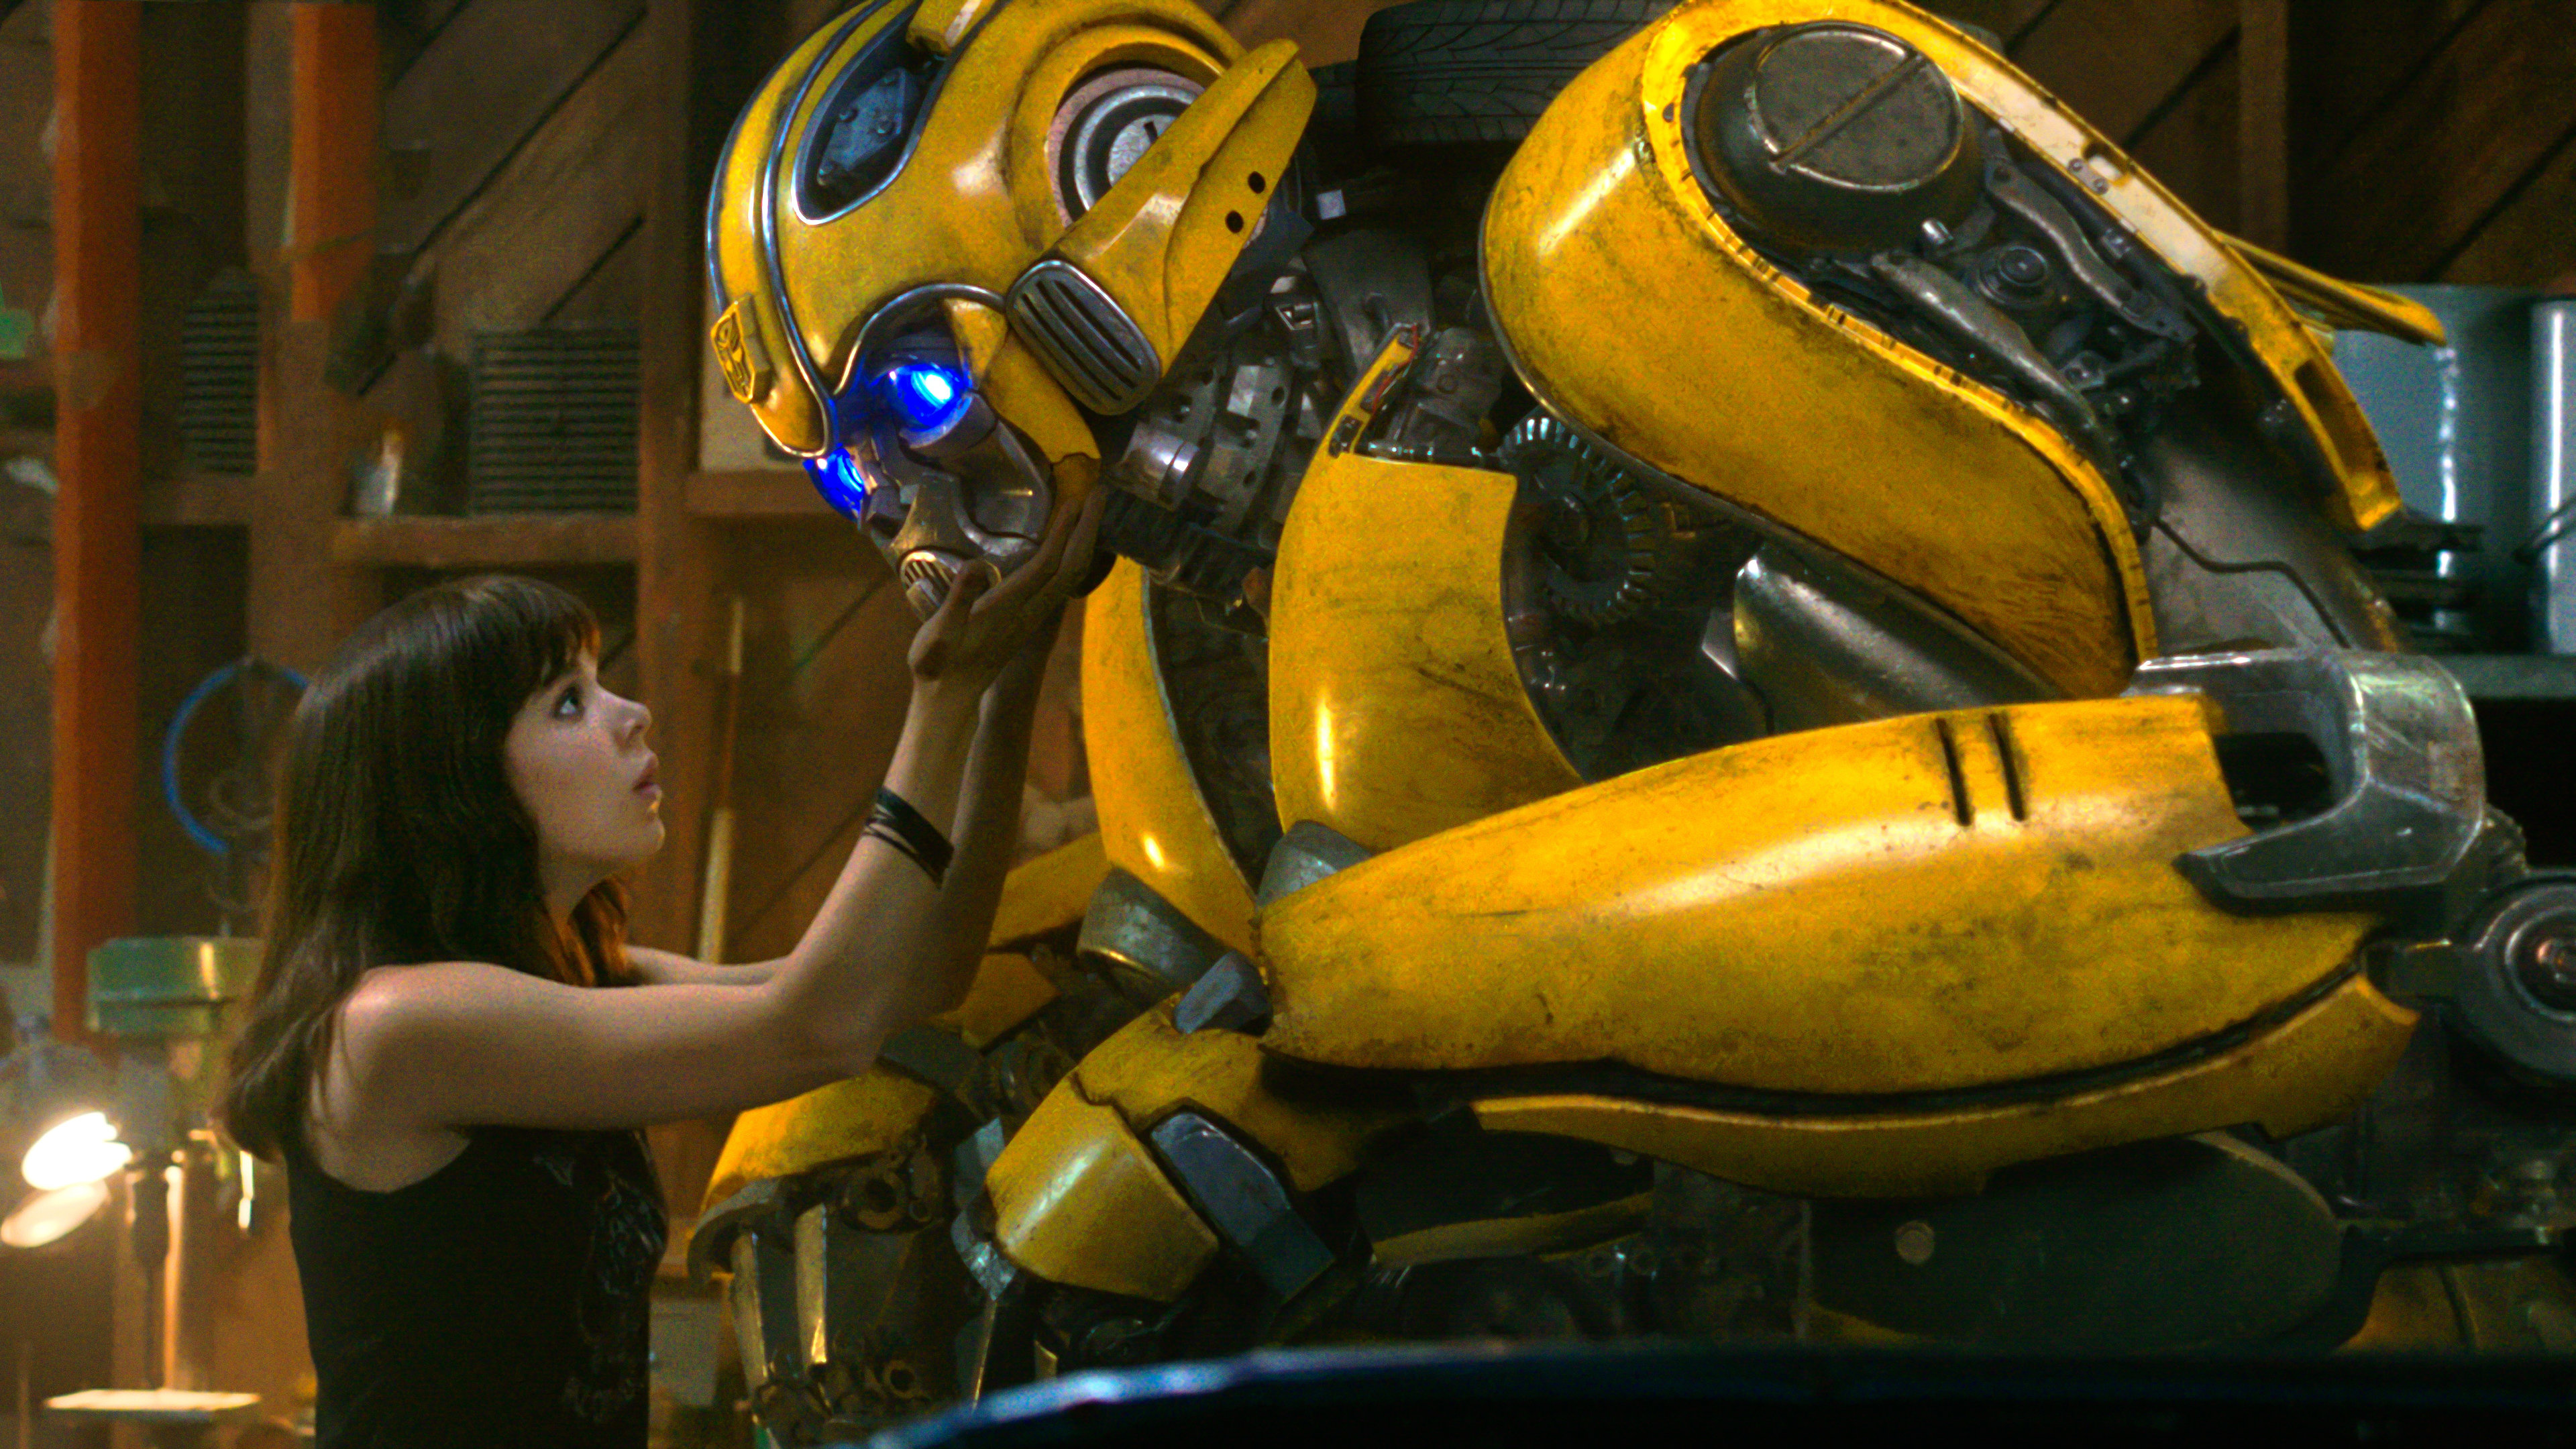 hailee steinfeld bumblebee movie 2018 4k wallpaper 1545590313 - Hailee Steinfeld Bumblebee Movie 2018 4K Wallpaper - Bumblebee (Movie 2018), Bumblebee